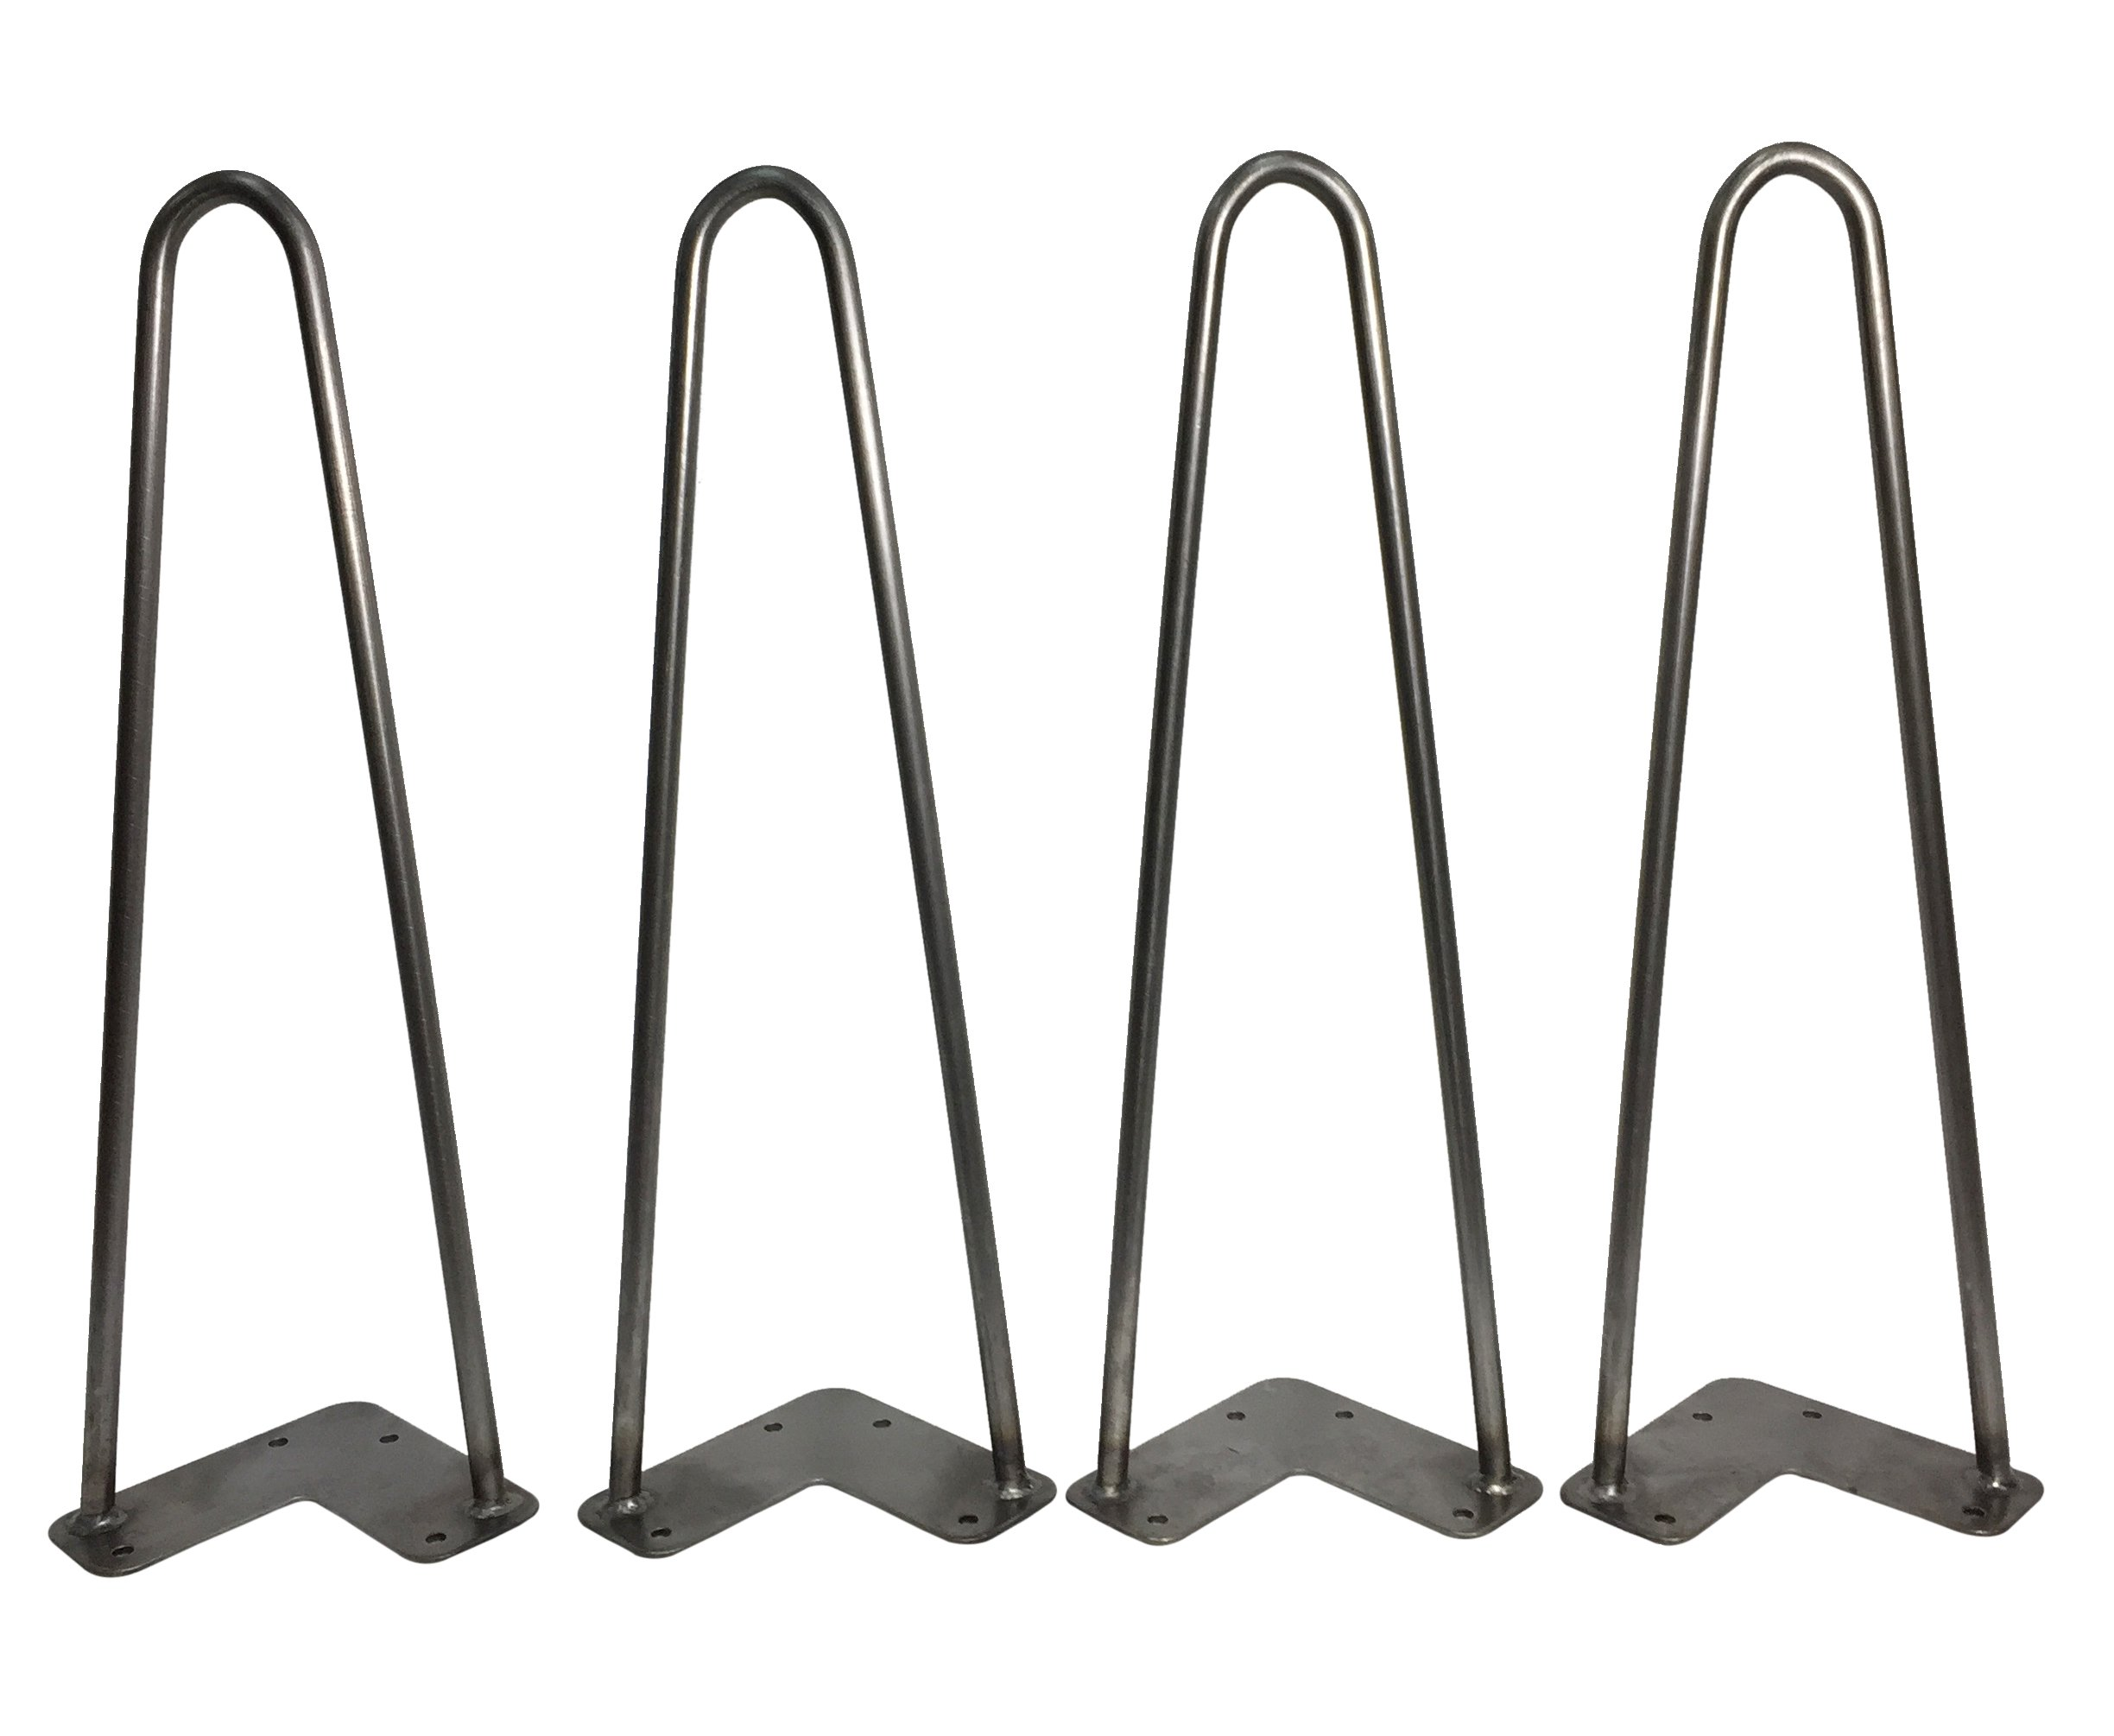 Hairpin Table Legs (Set of 4), Heavy Duty Raw Steel Rods for Industrial Design Look (16 Inch)